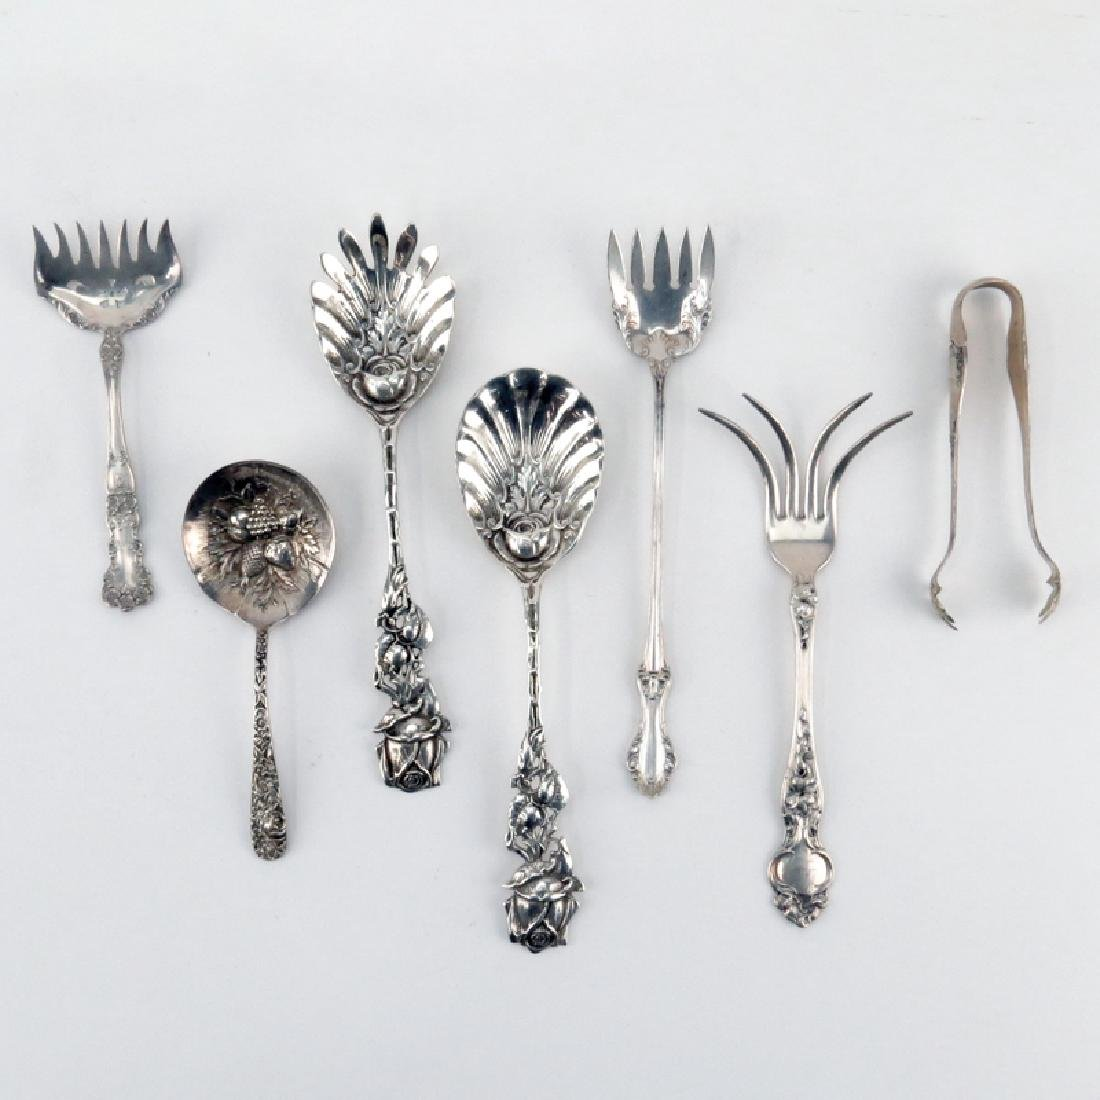 Grouping of Seven (7) Sterling Silver Serving Pieces.